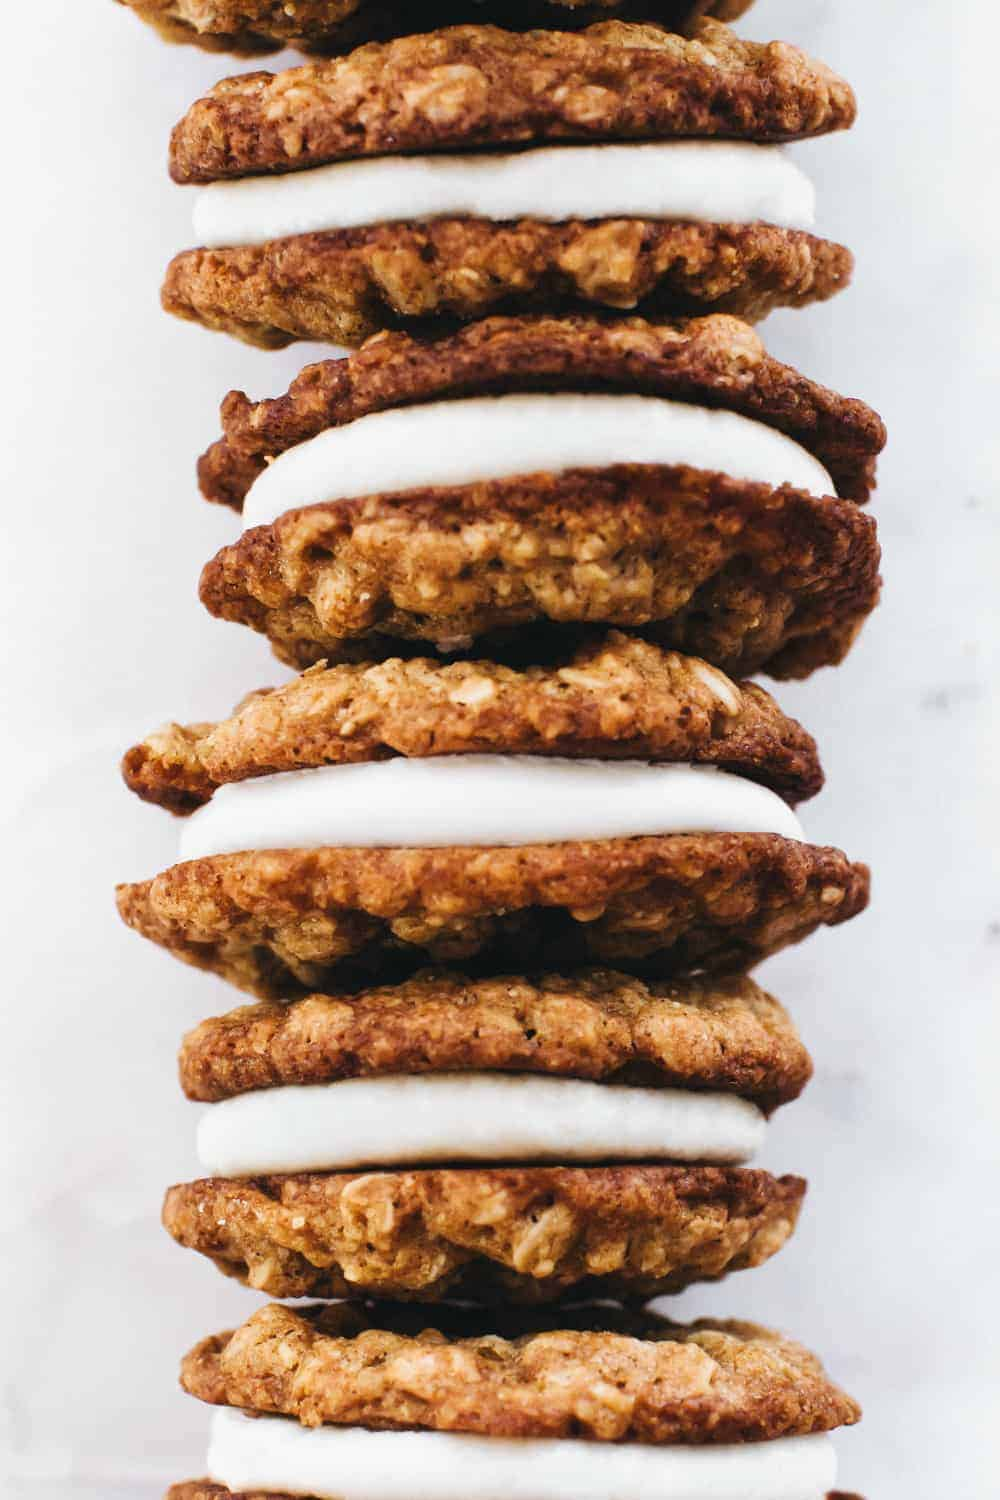 You'll love making homemade Oatmeal Cream Pies at home!